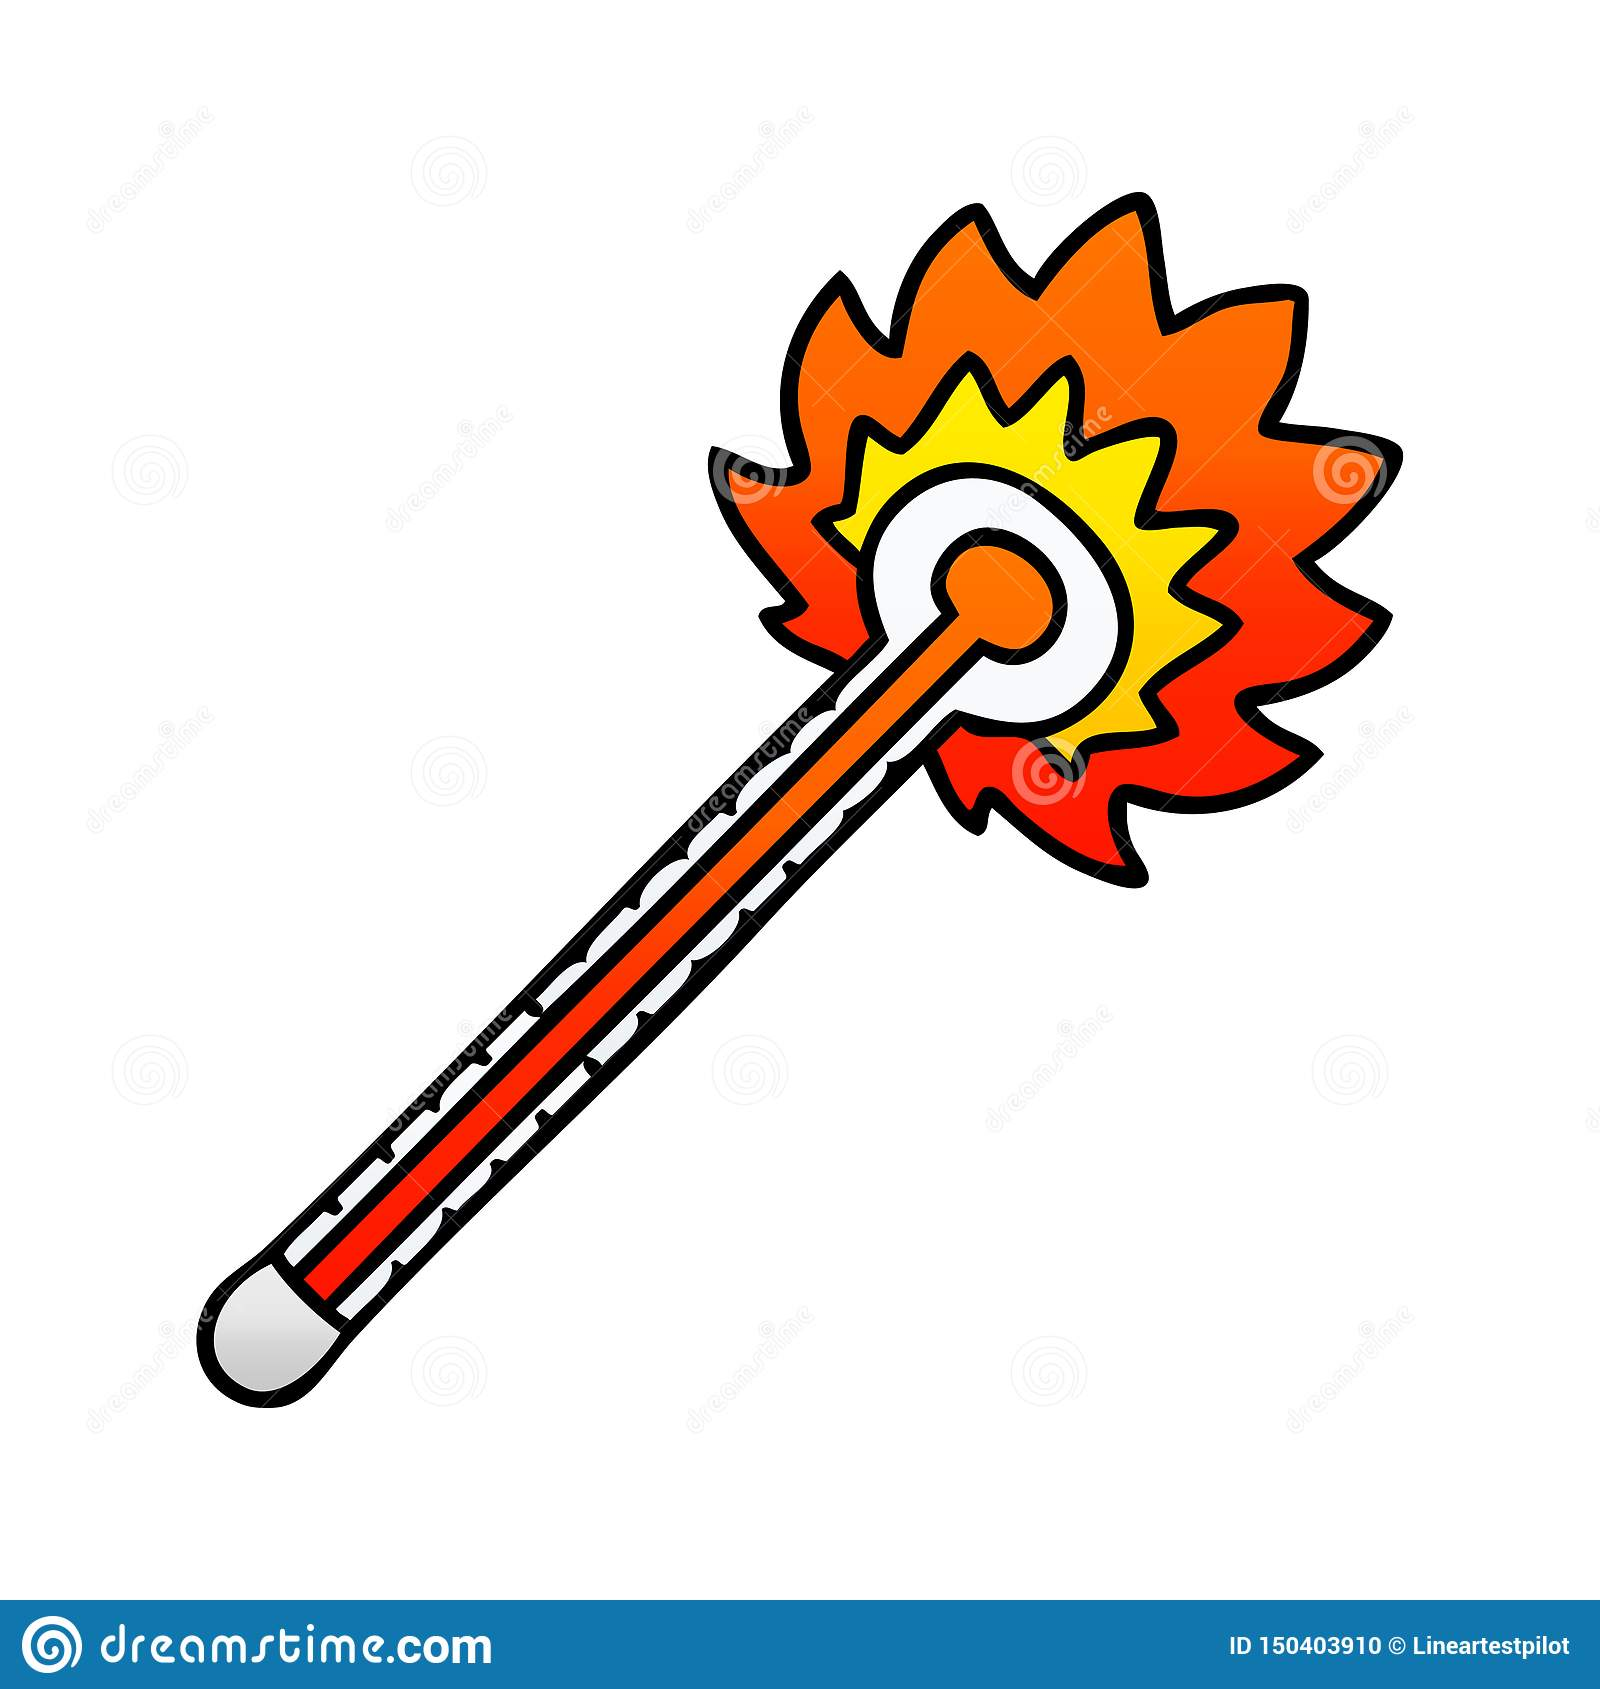 Cartoon Hot Thermometer Stock Illustrations 2 421 Cartoon Hot Thermometer Stock Illustrations Vectors Clipart Dreamstime